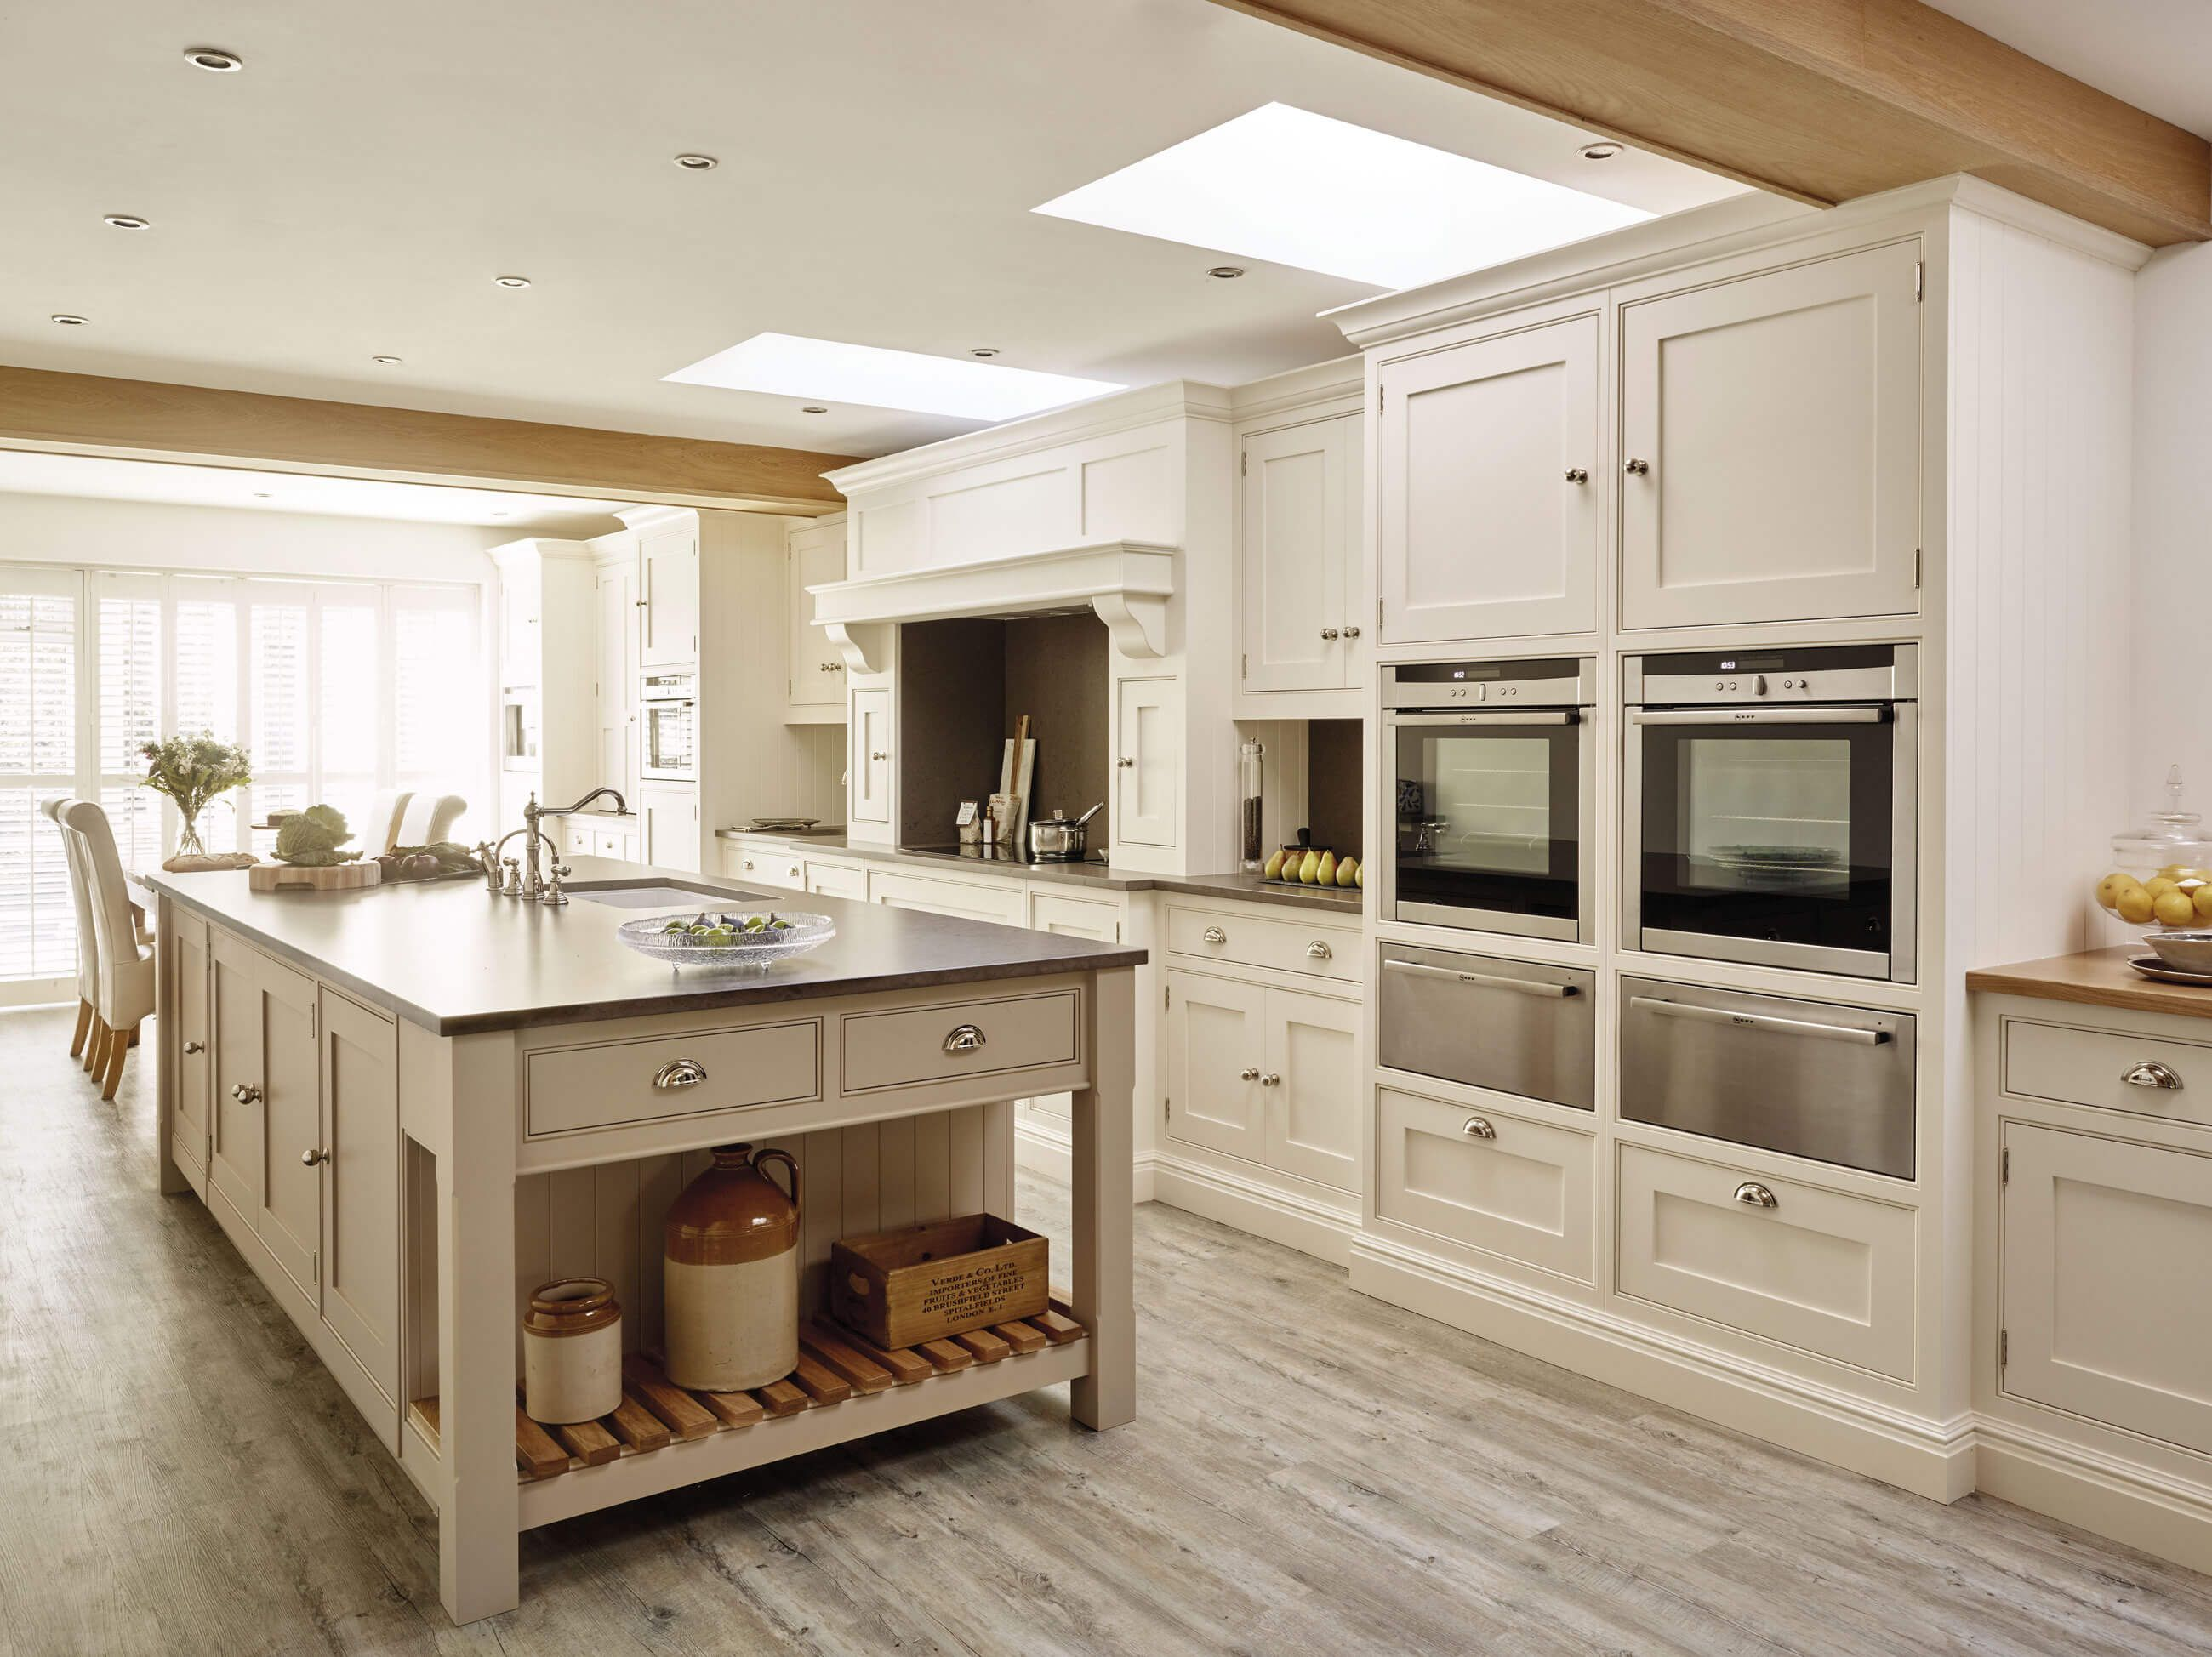 Traditional Country Kitchen Design With A Modern Shaker Style Awesome Miele Kitchens Design Review